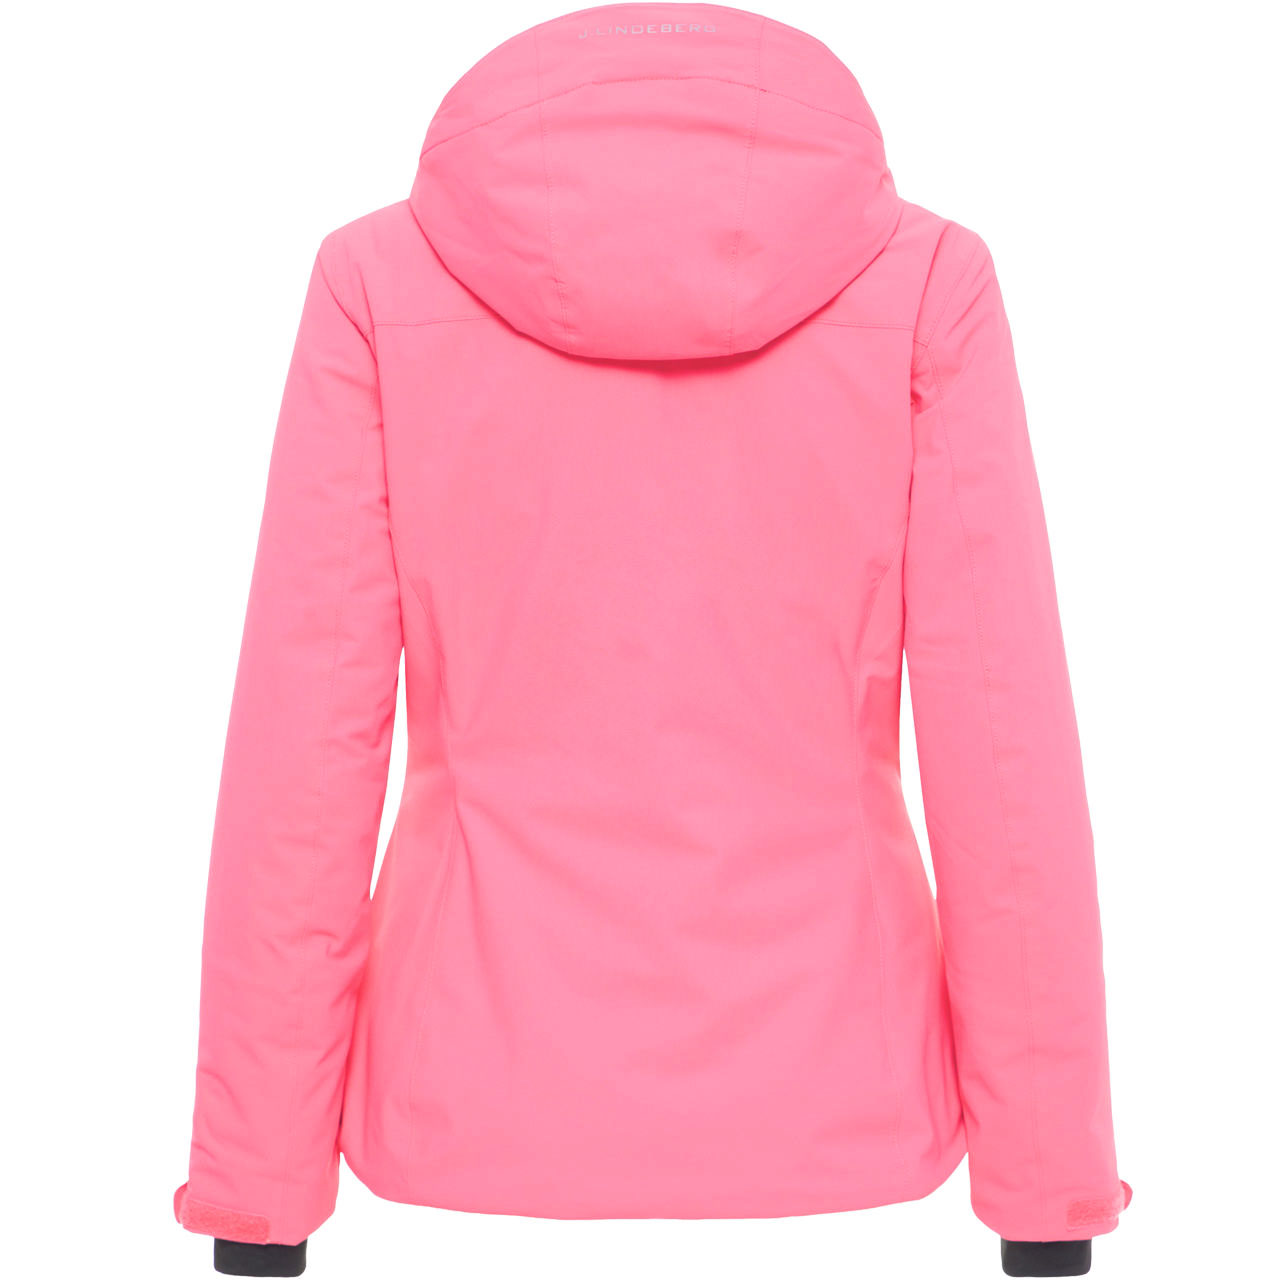 J.Lindeberg Women Jacket TRUULI hot pink